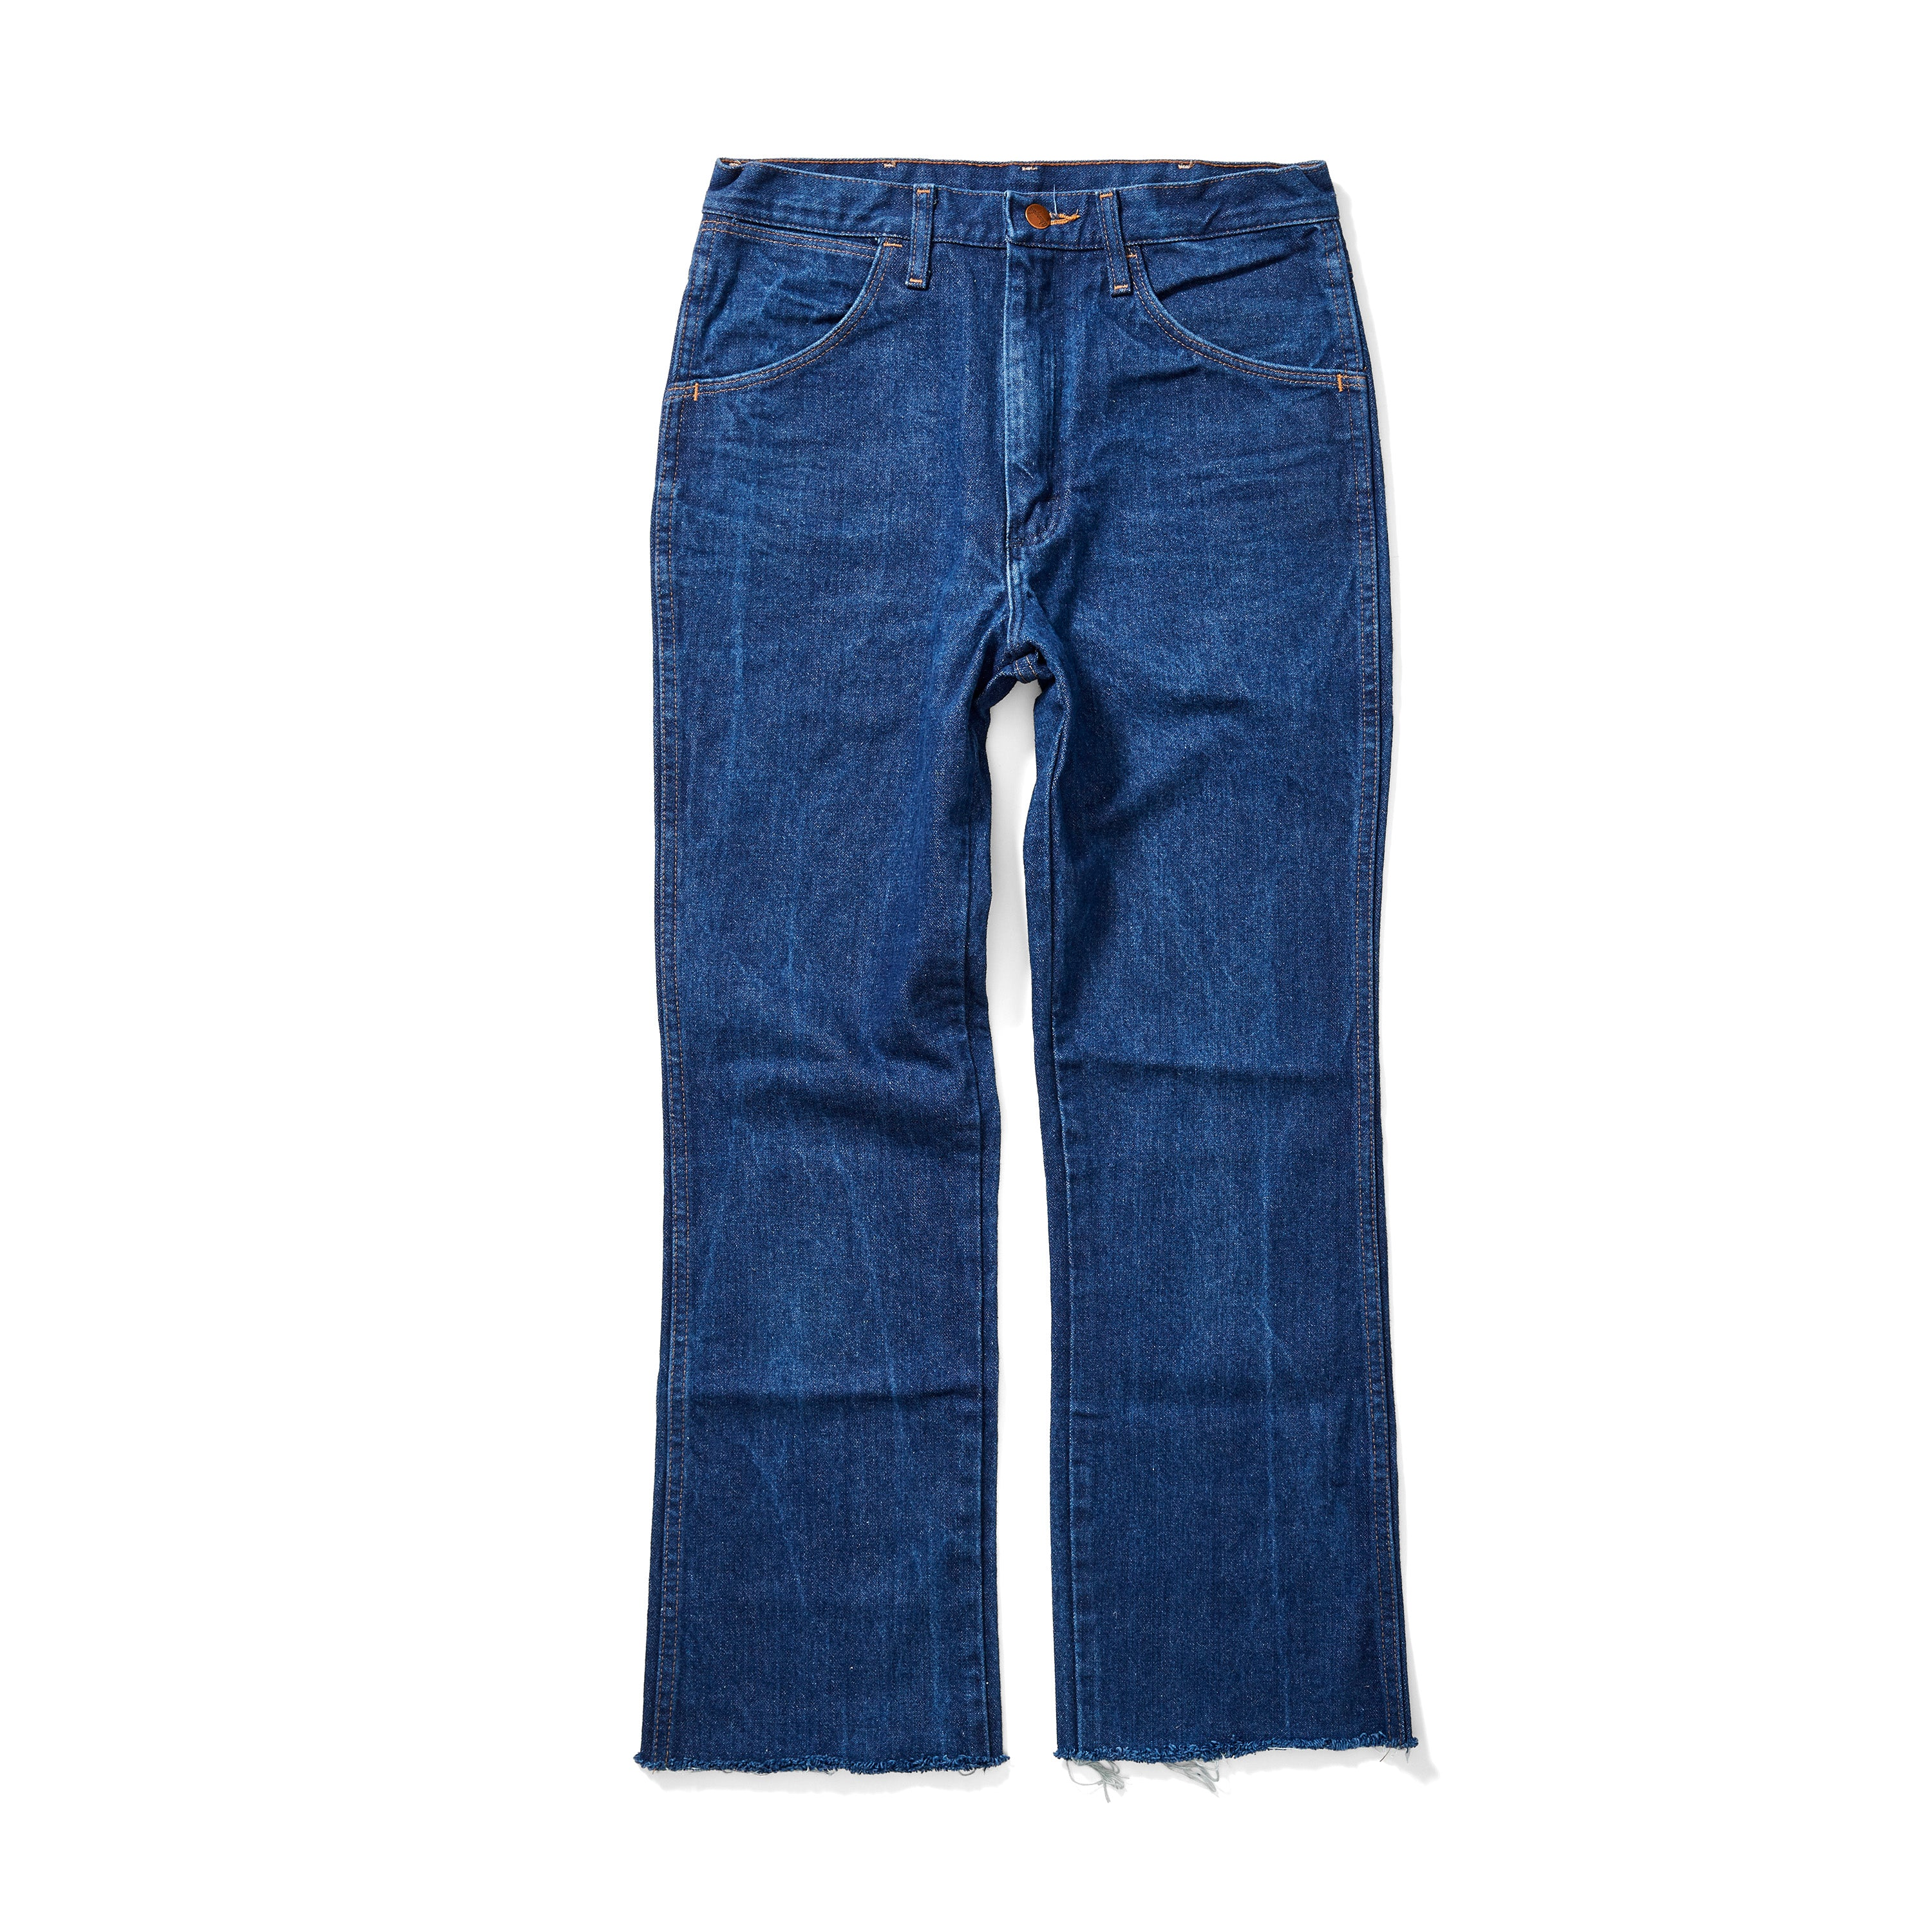 Vintage Wrangler Jeans <br> Cropped Straight Fit - Size 29